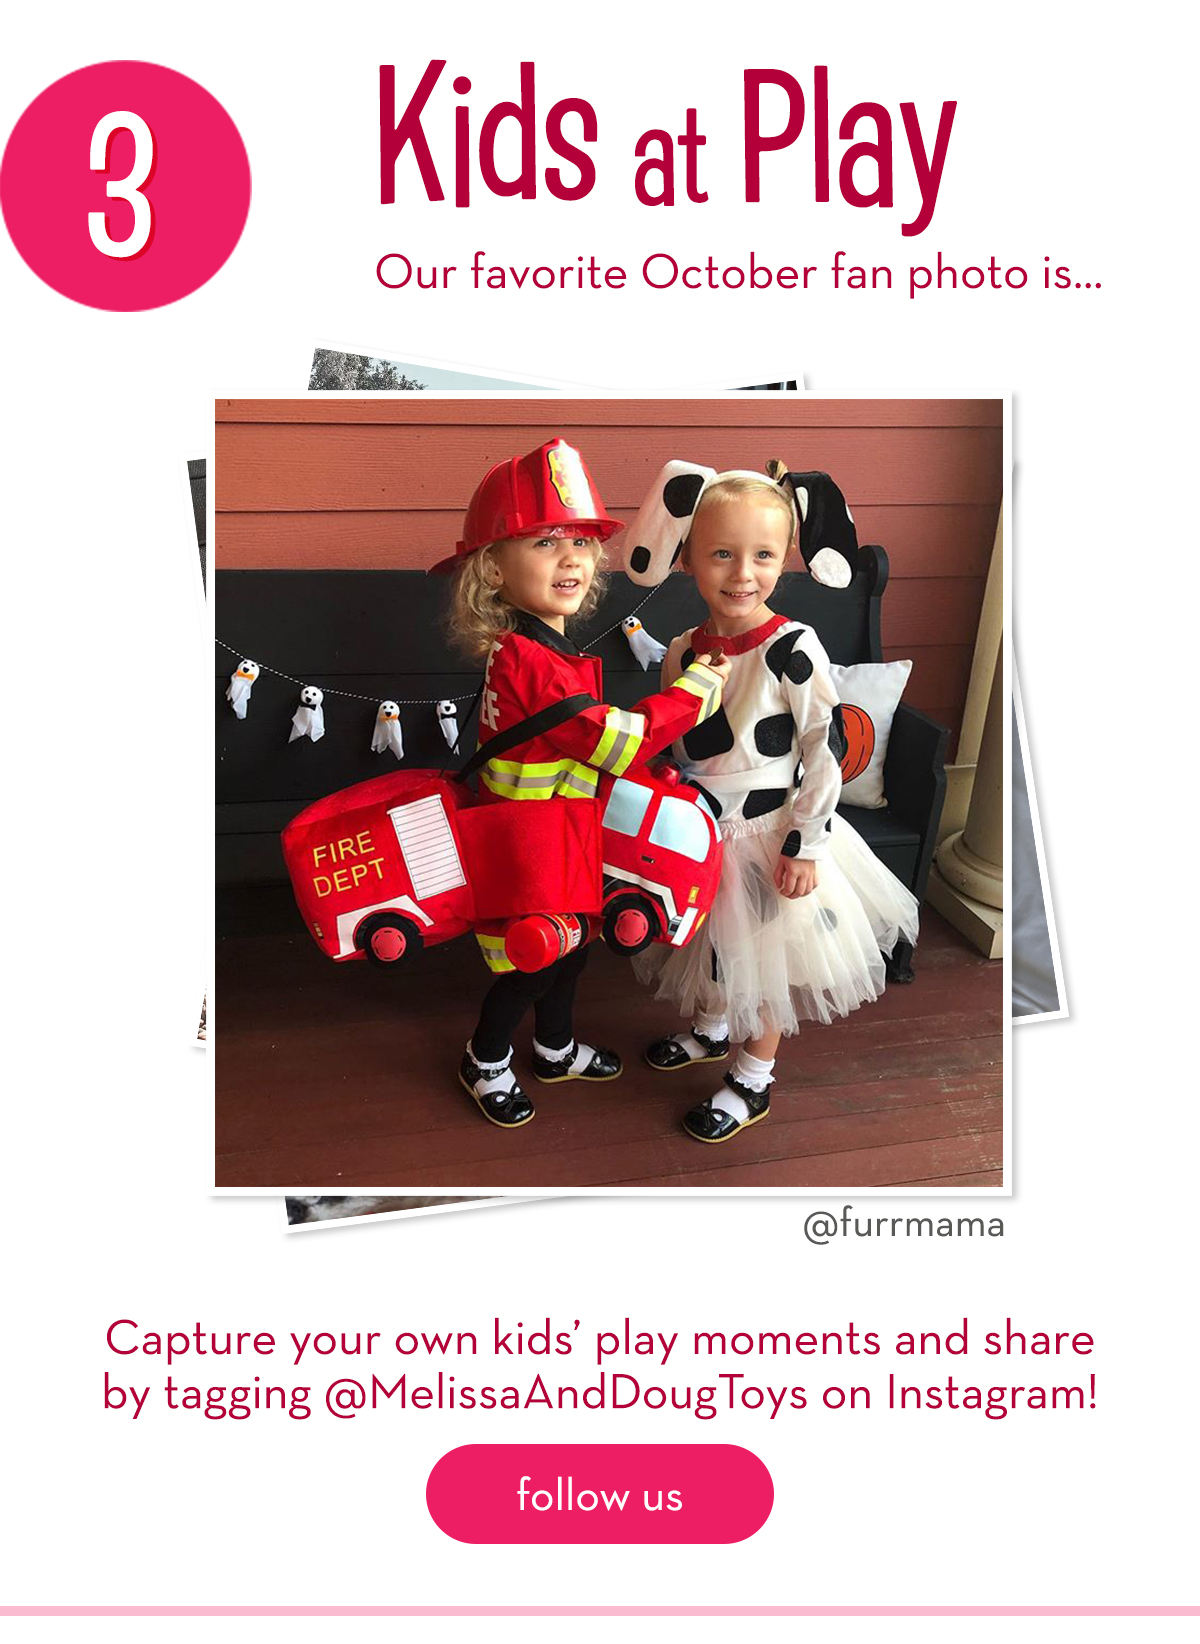 3. Kids at Play - Our favorite October fan photo is... @furrmama - Capture your own kids' play moments and share by tagging @MelissaAndDougToys on Instagram!